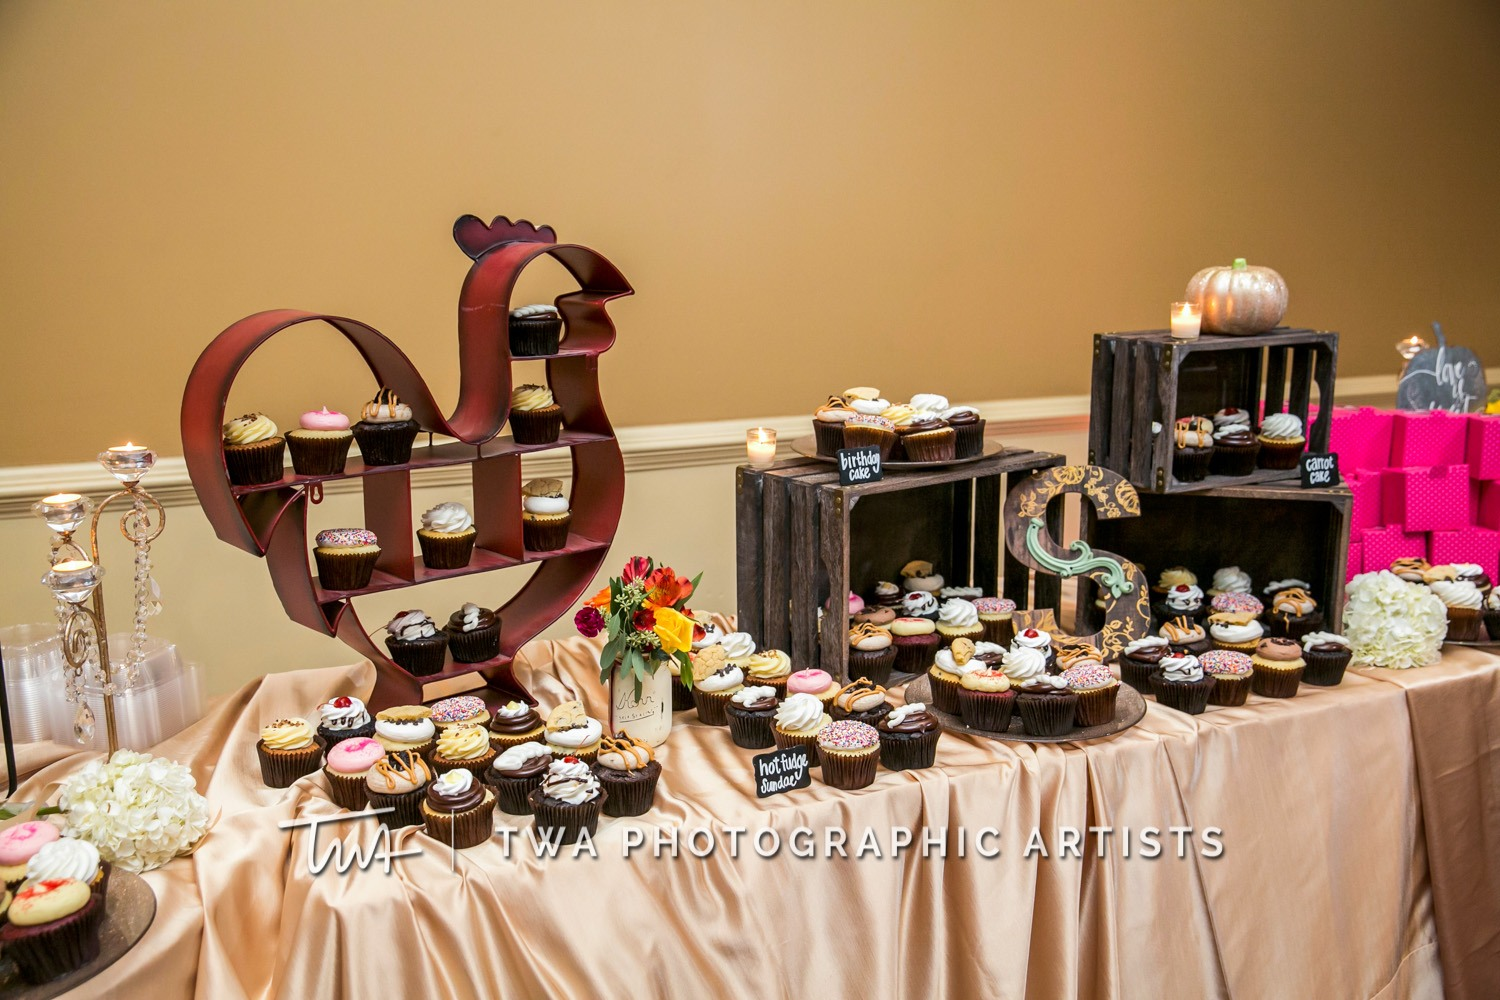 Chicago-Wedding-Photographer-TWA-Photographic-Artists-Bolingbrook-GC_Kuhn_Shelby_DR_DH-0687